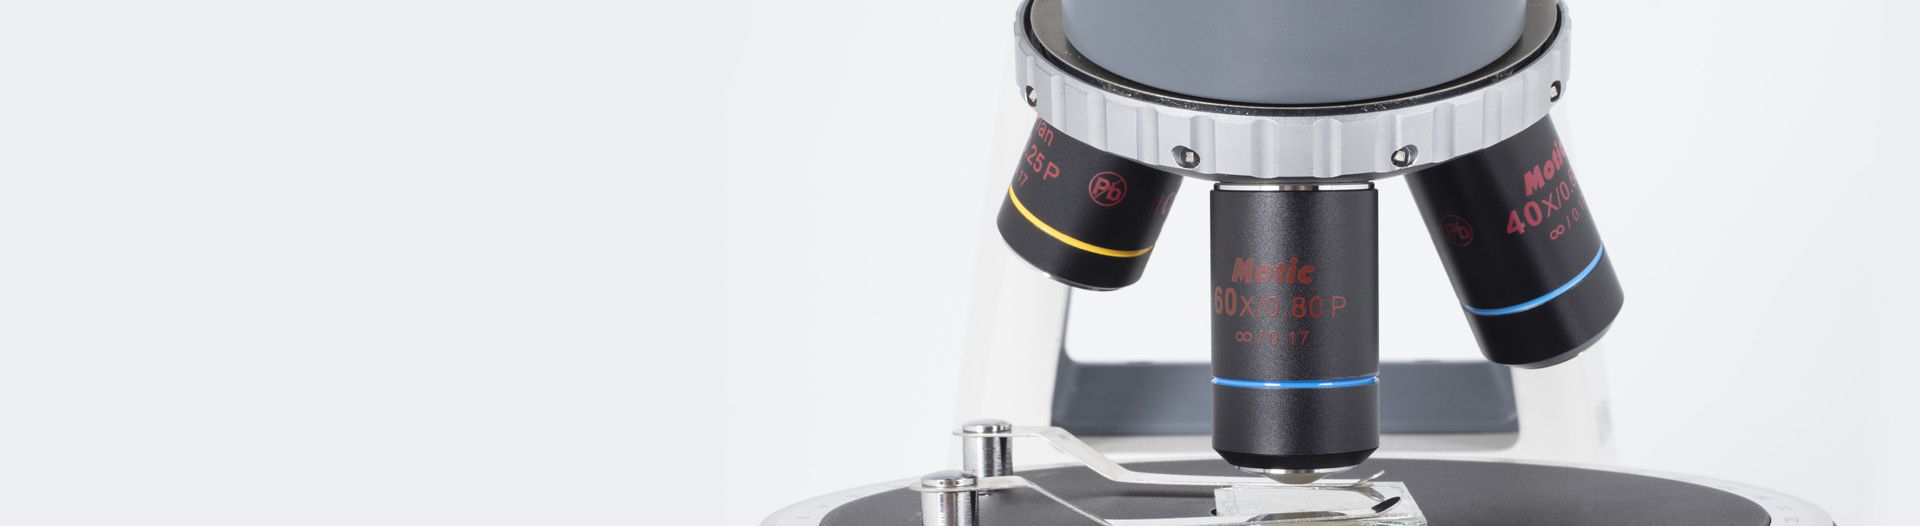 BA310 POL polarization microscope optics